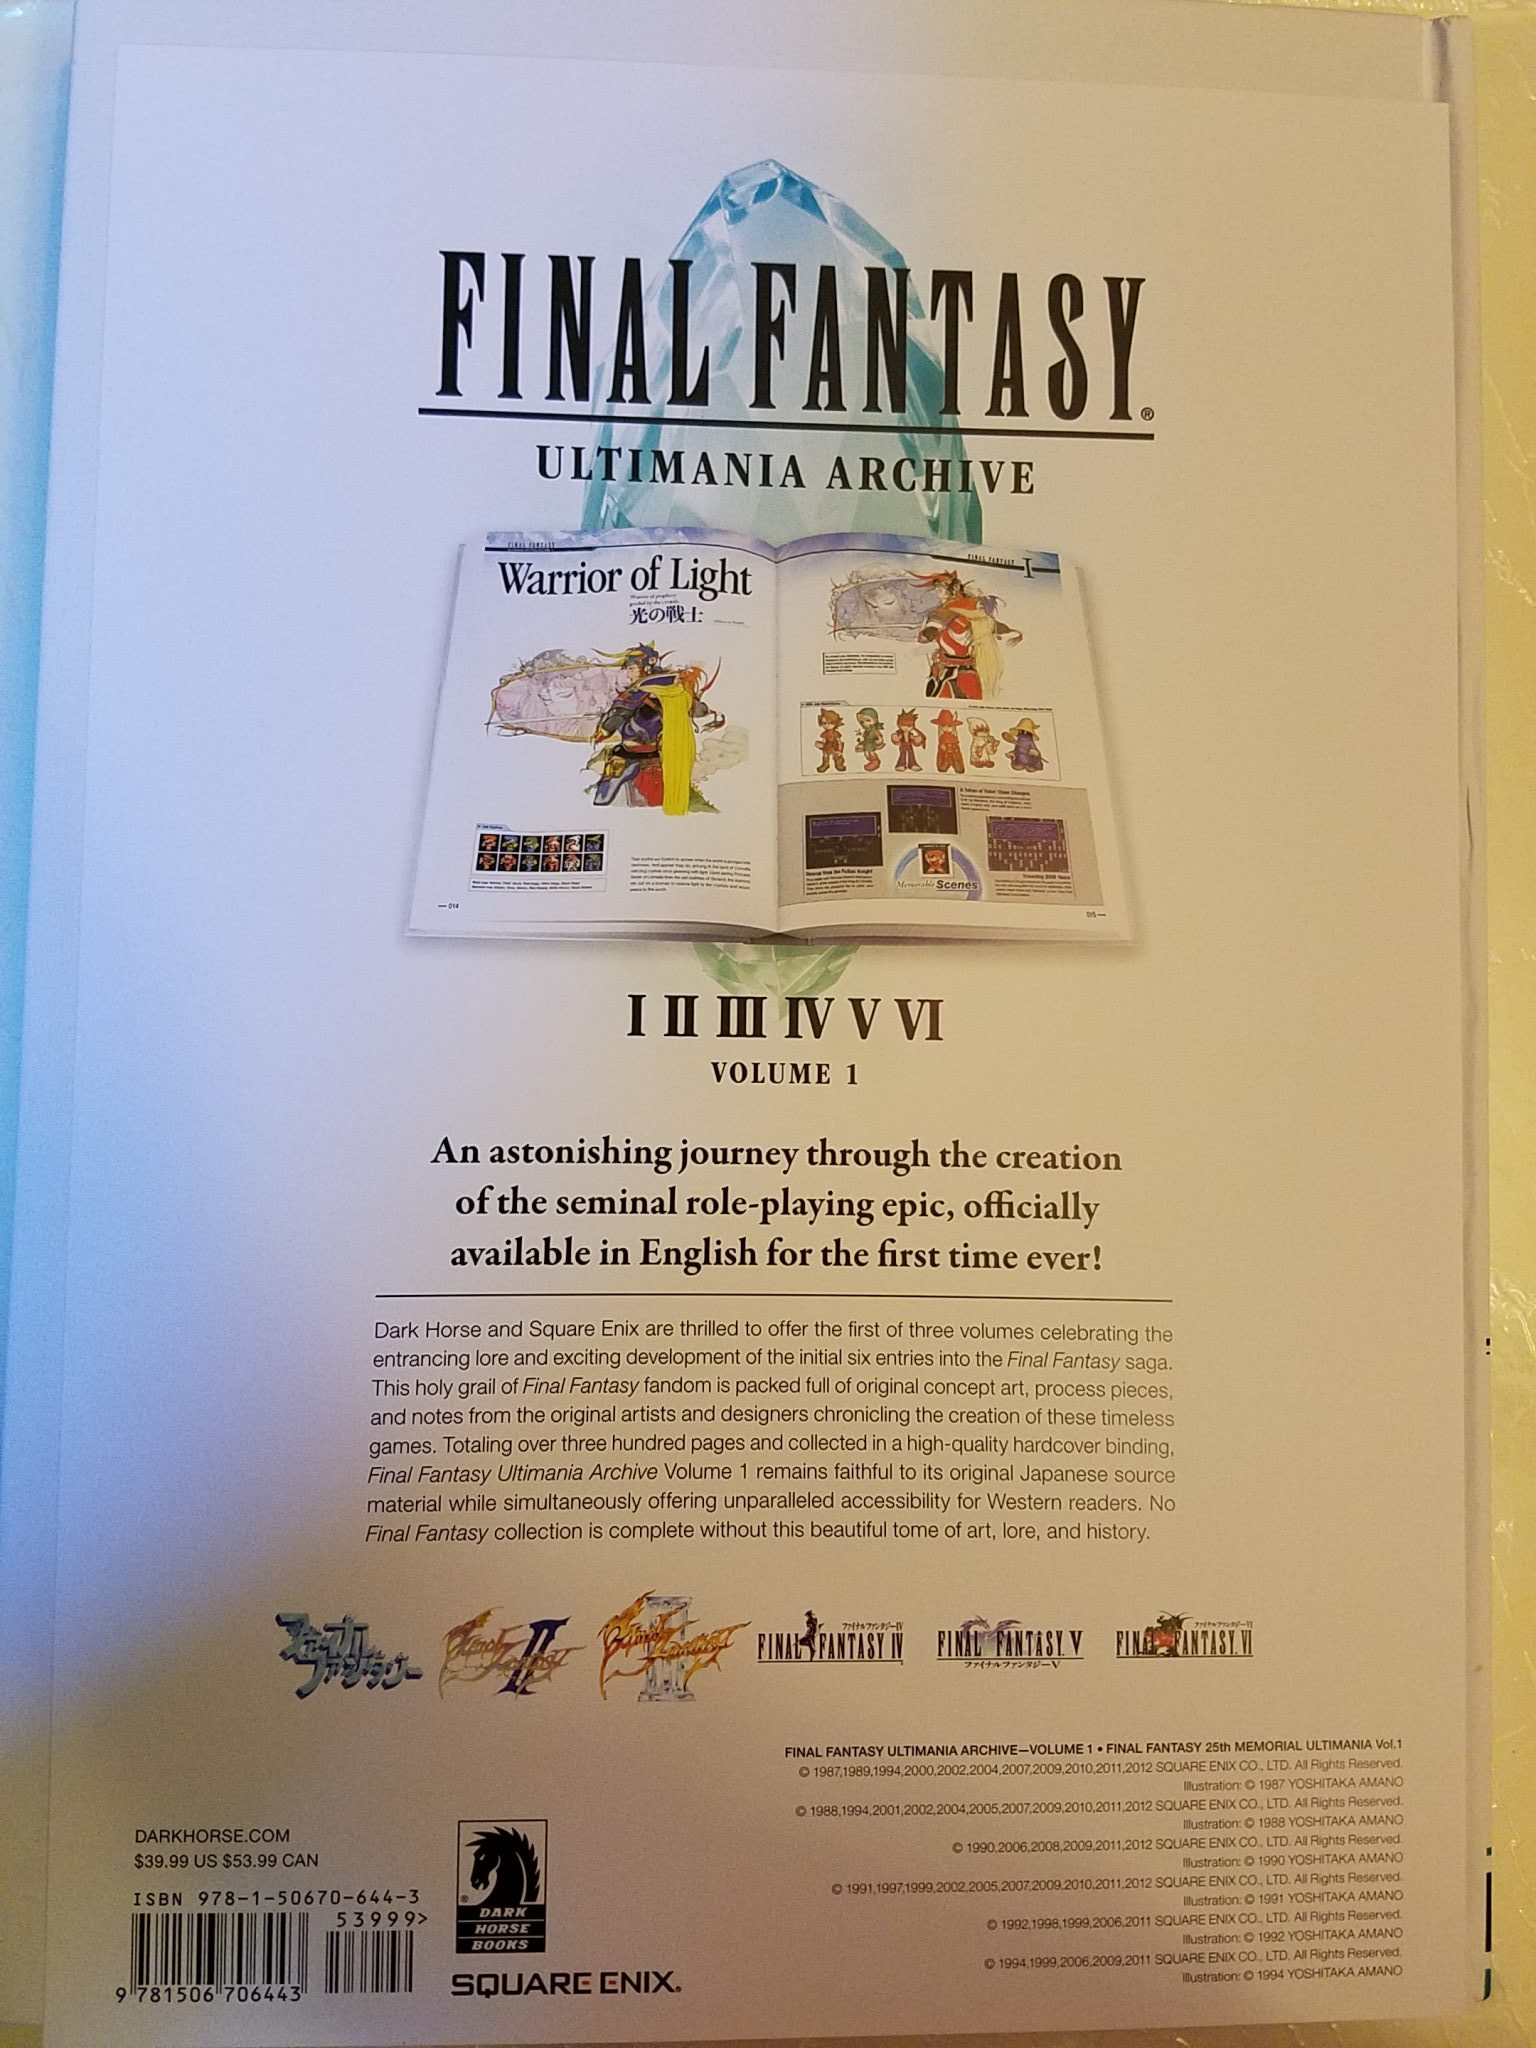 Final Fantasy Ultimania Archive 1 Back Cover Insert